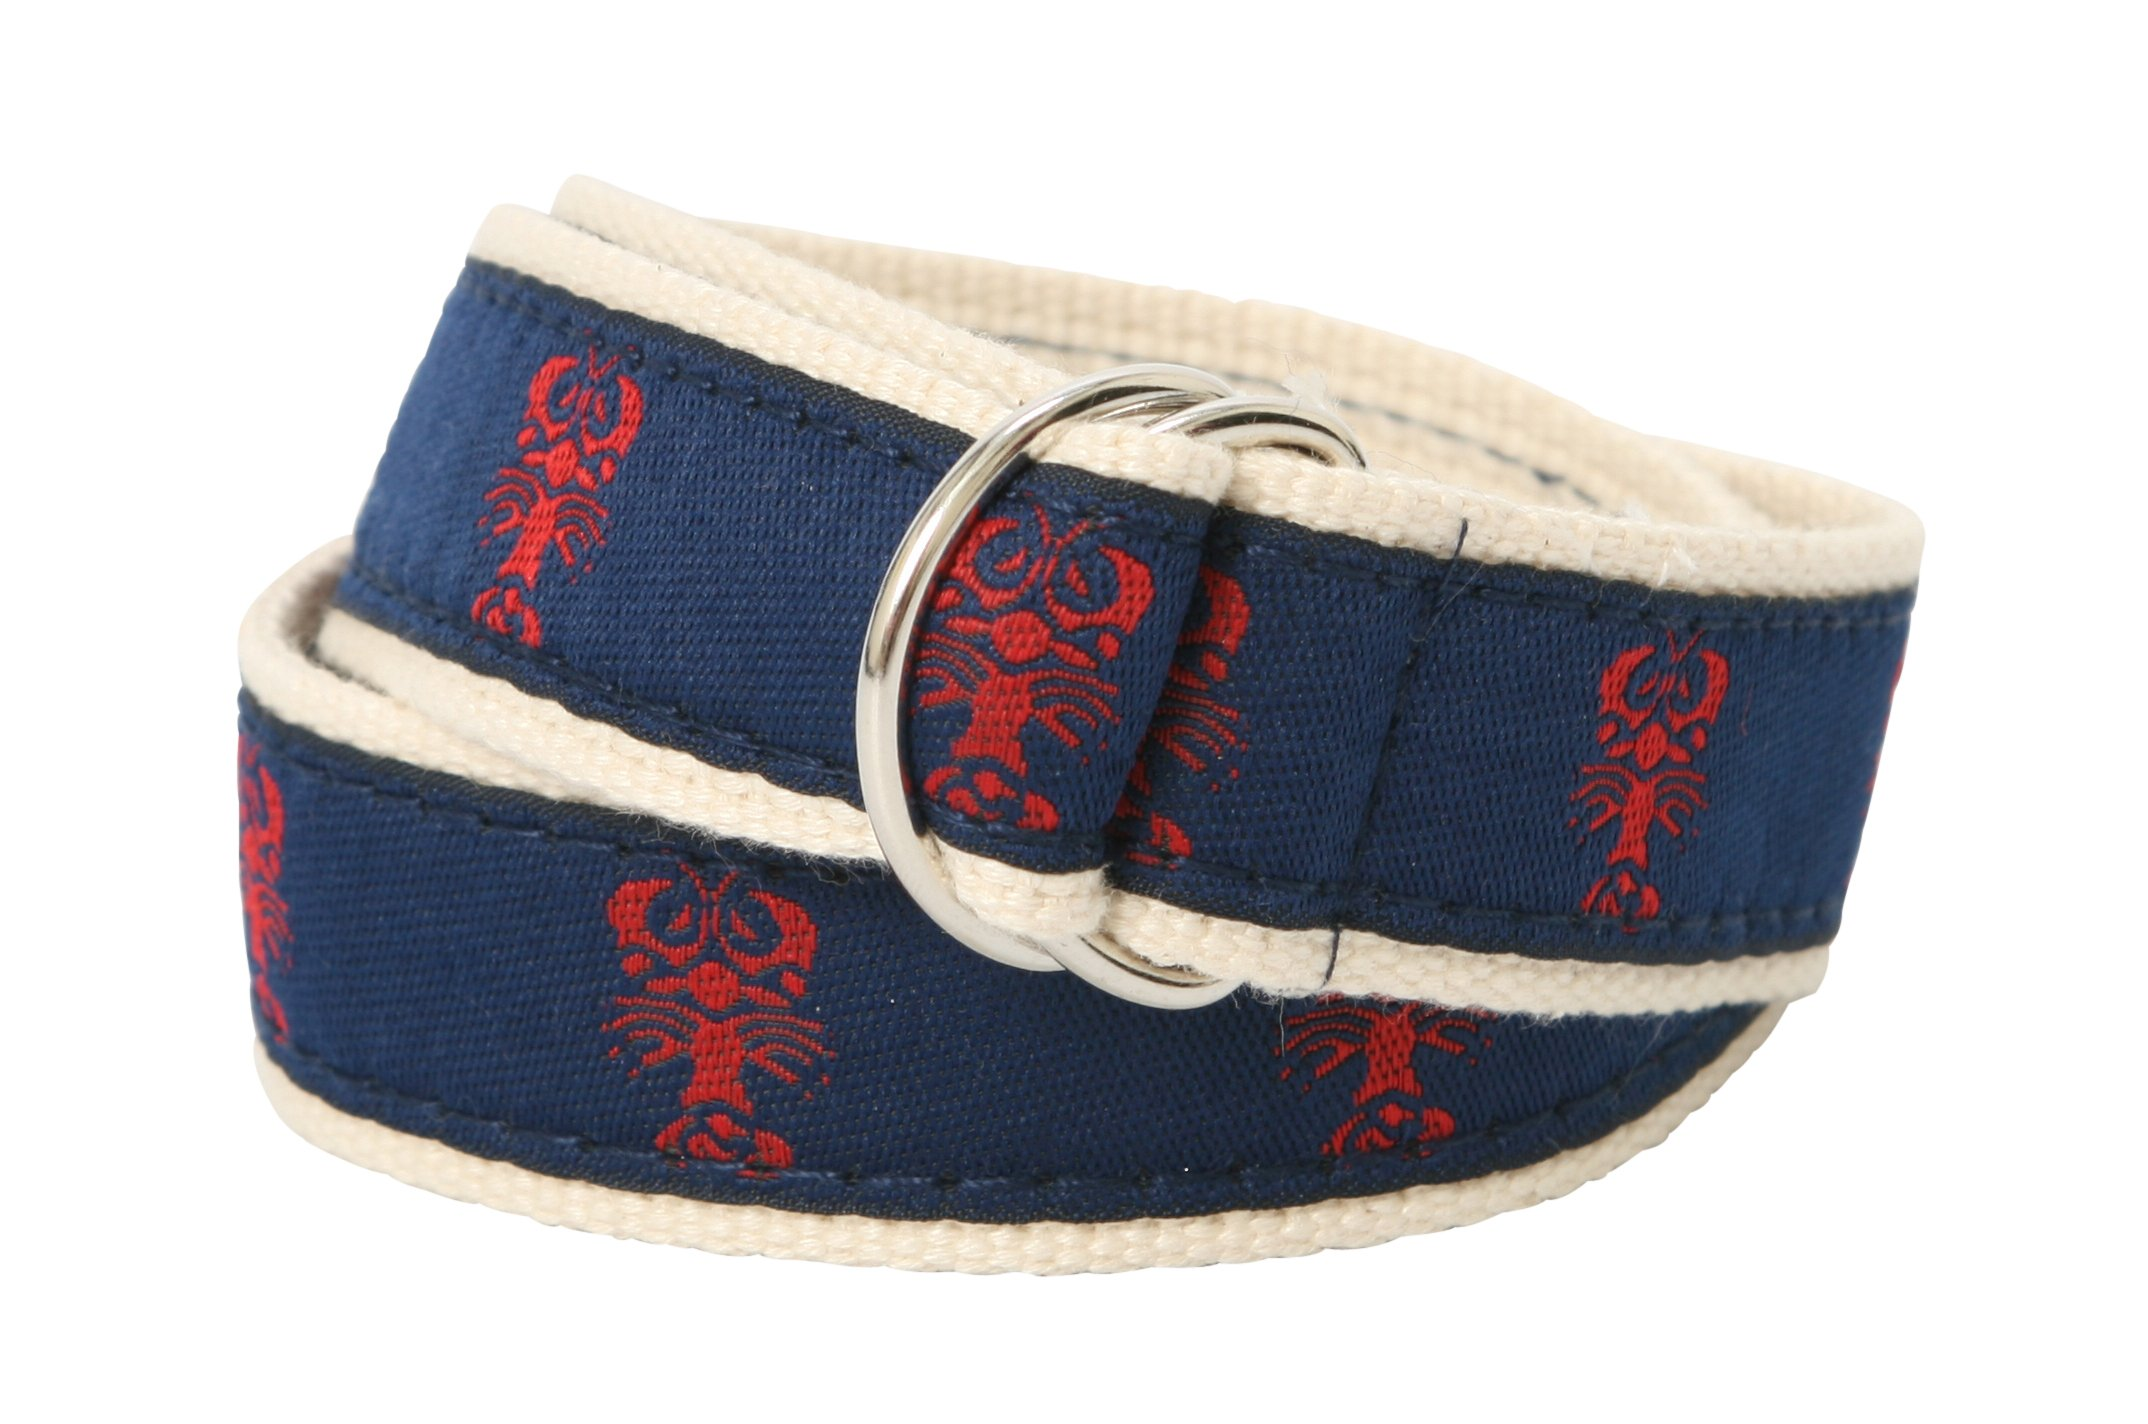 Bean Belts Boy's Preppy Lobsters Belt – Fits Children Sizes 2T - 4T – Fully Adjustable